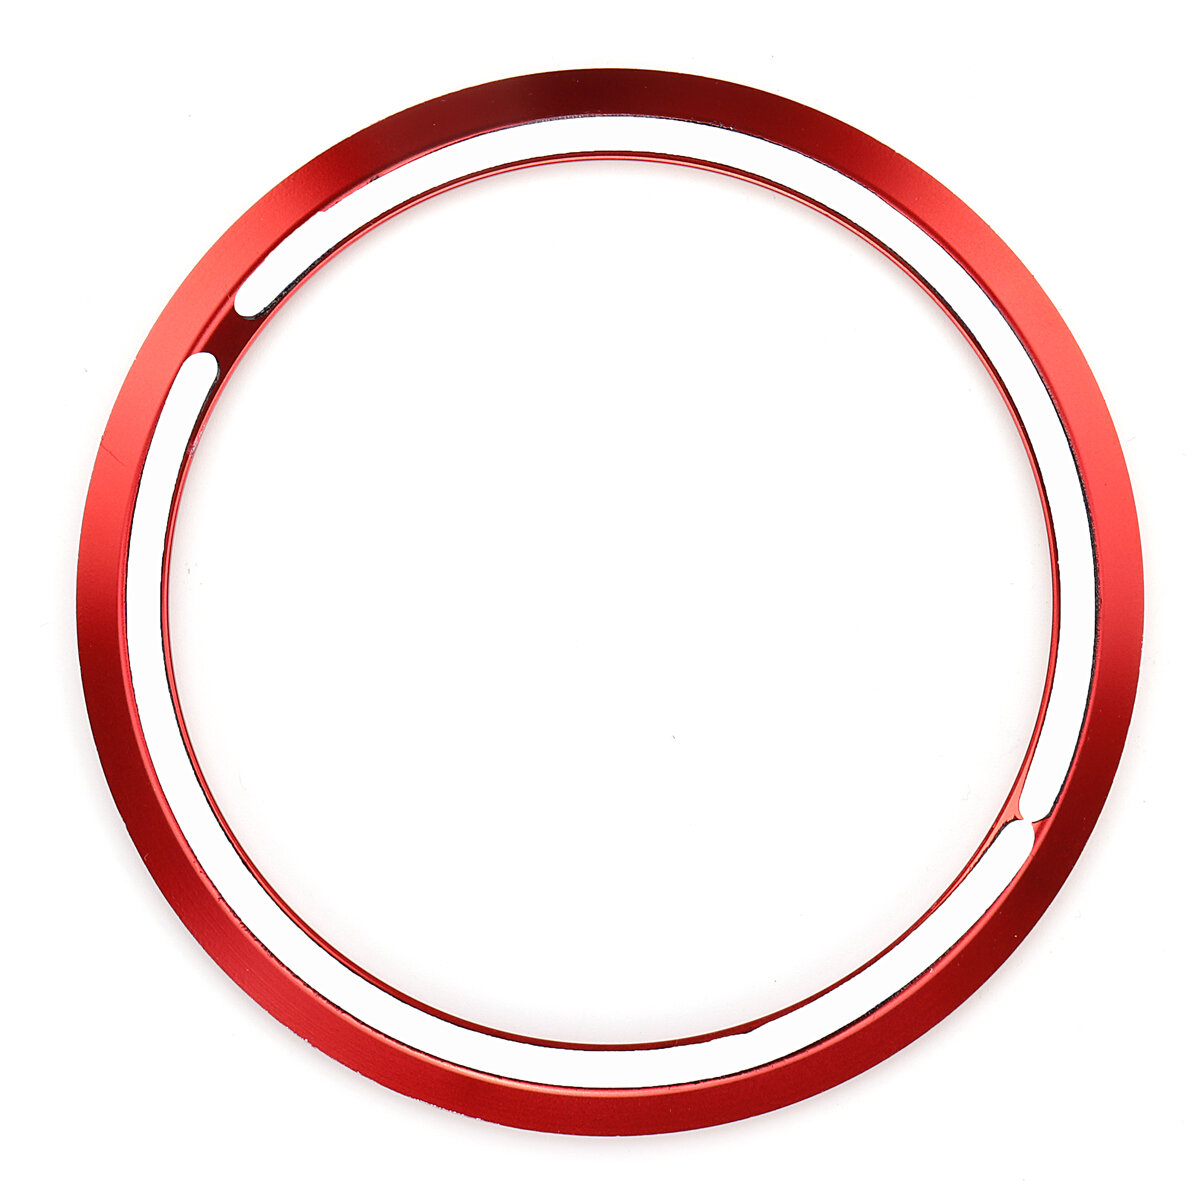 Car Air Condition Vent Outlet Ring Cover Trim For Mercedes Benz A Class W177 V177, Banggood  - buy with discount